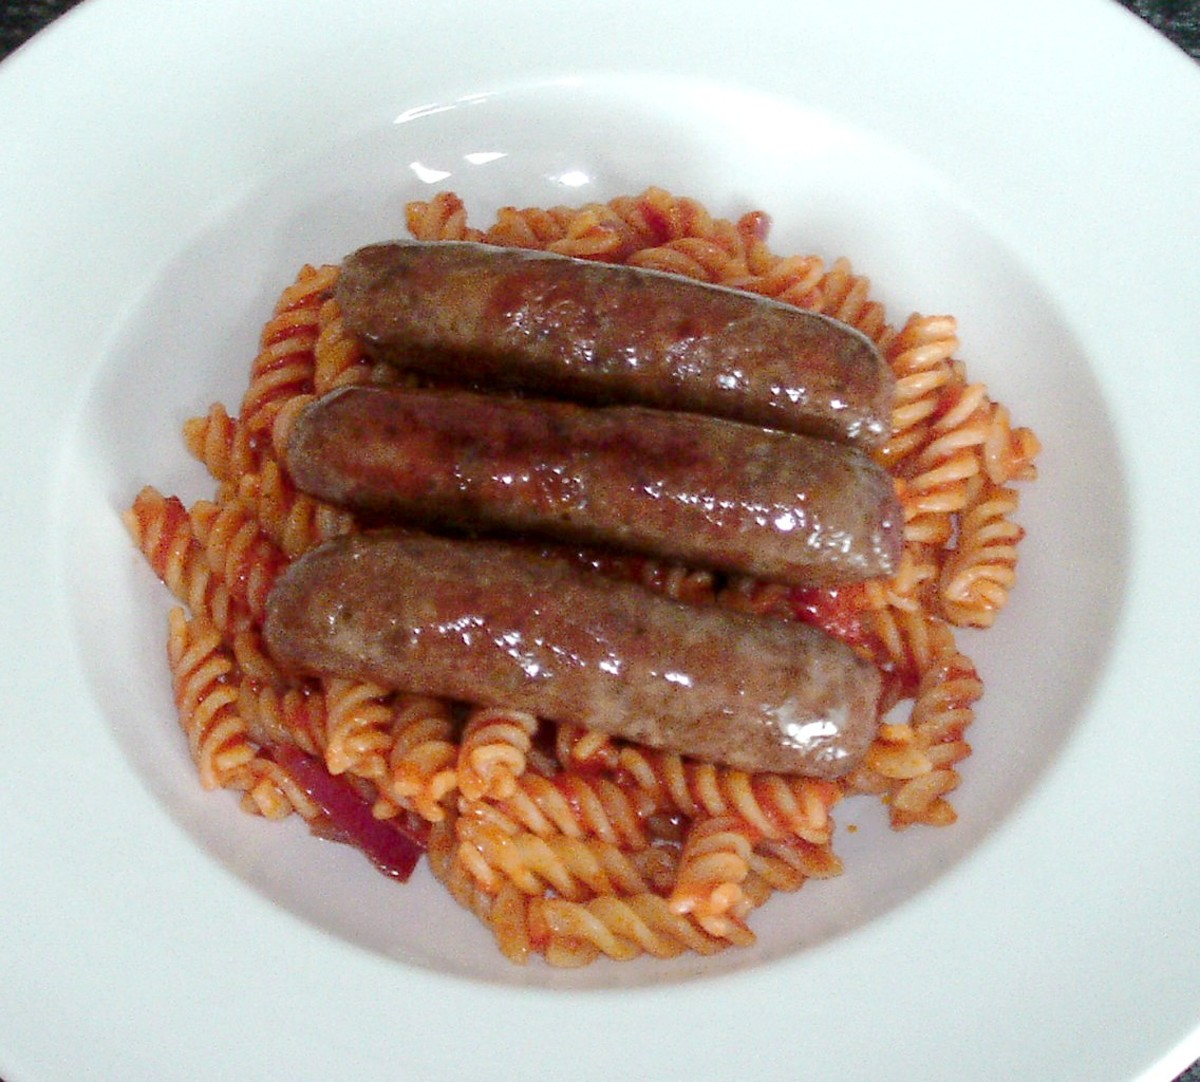 Venison sausages on fusilli pasta